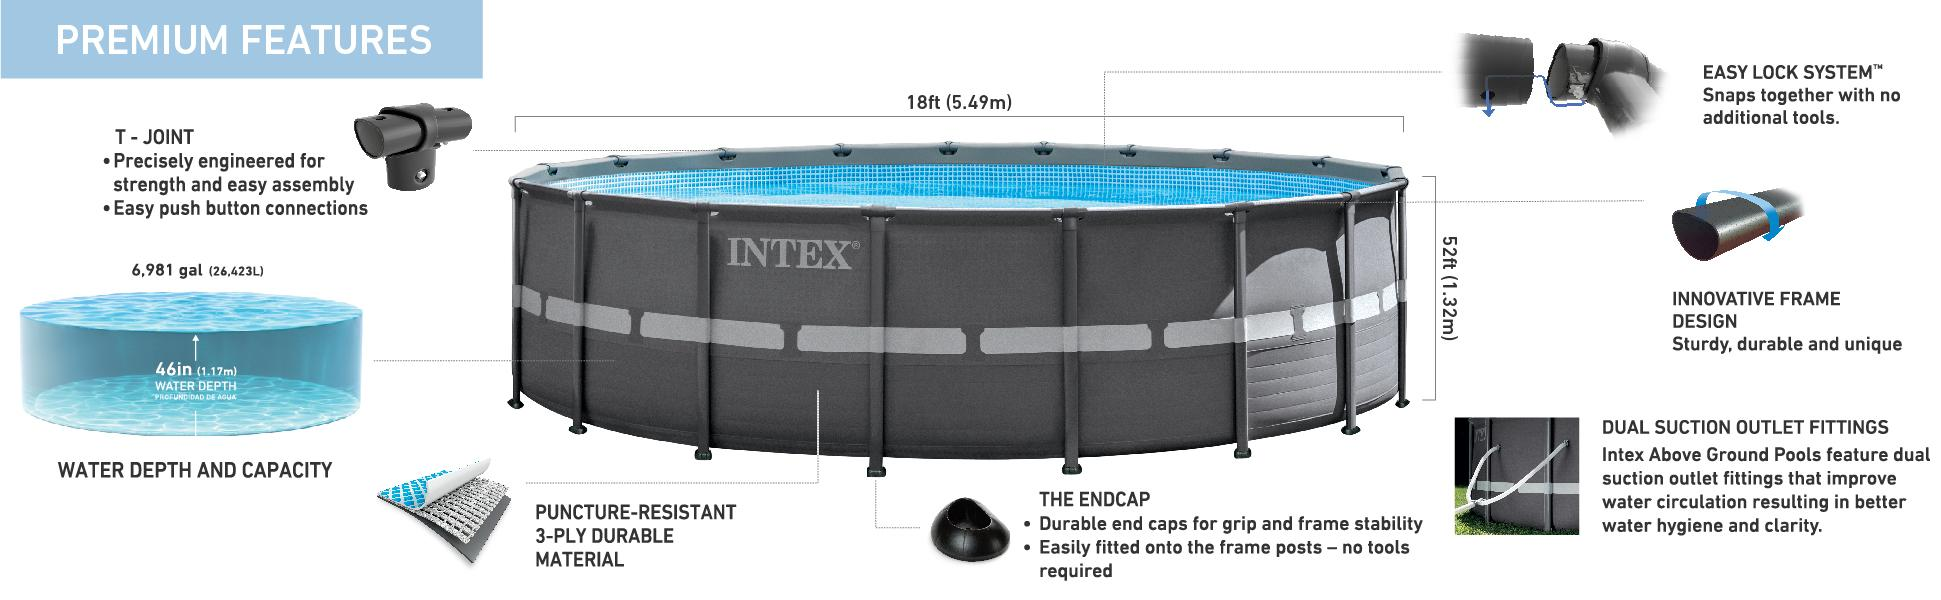 Amazoncom Intex 18ft X 52in Ultra Frame Pool Set with